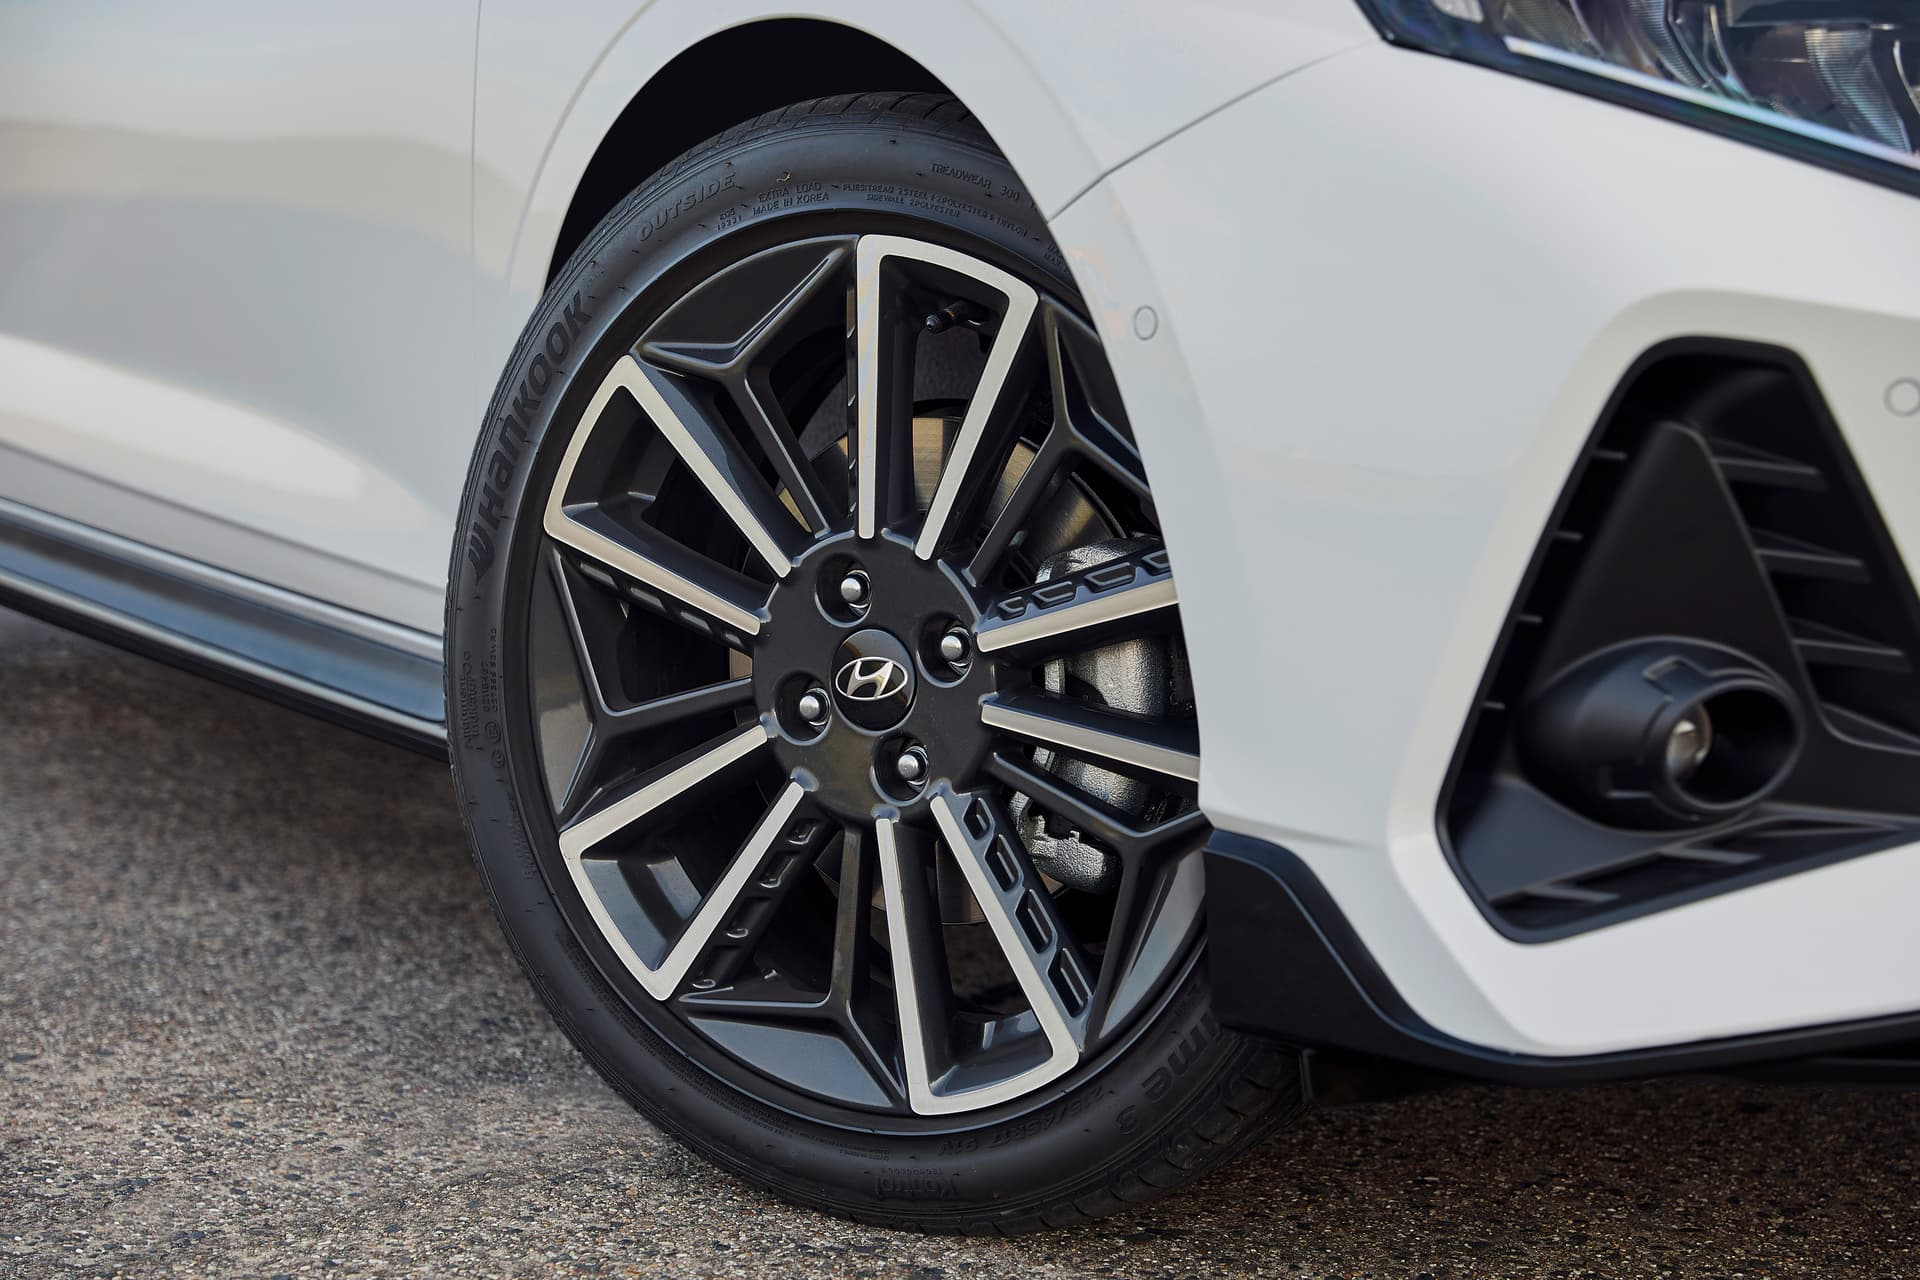 The front wheels on the all-new Hyundai i20 N Line with their stylish two-tone finish.